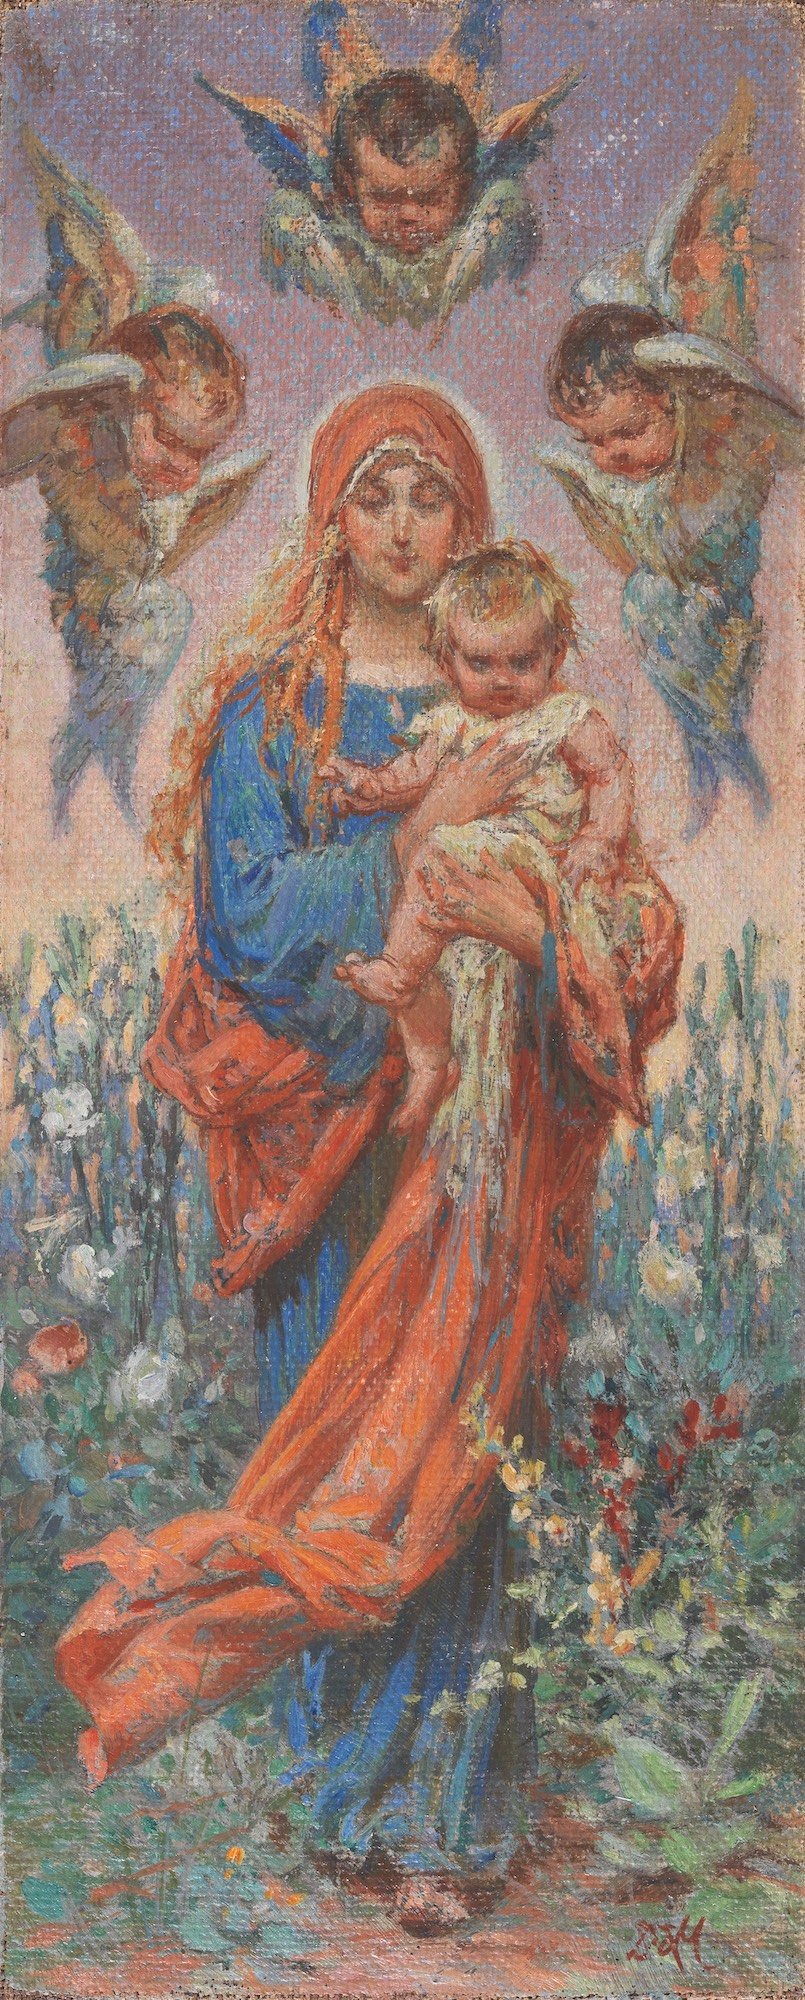 Lot 26 Dimitrios BISKINIS | The Virgin Mary and young Jesus